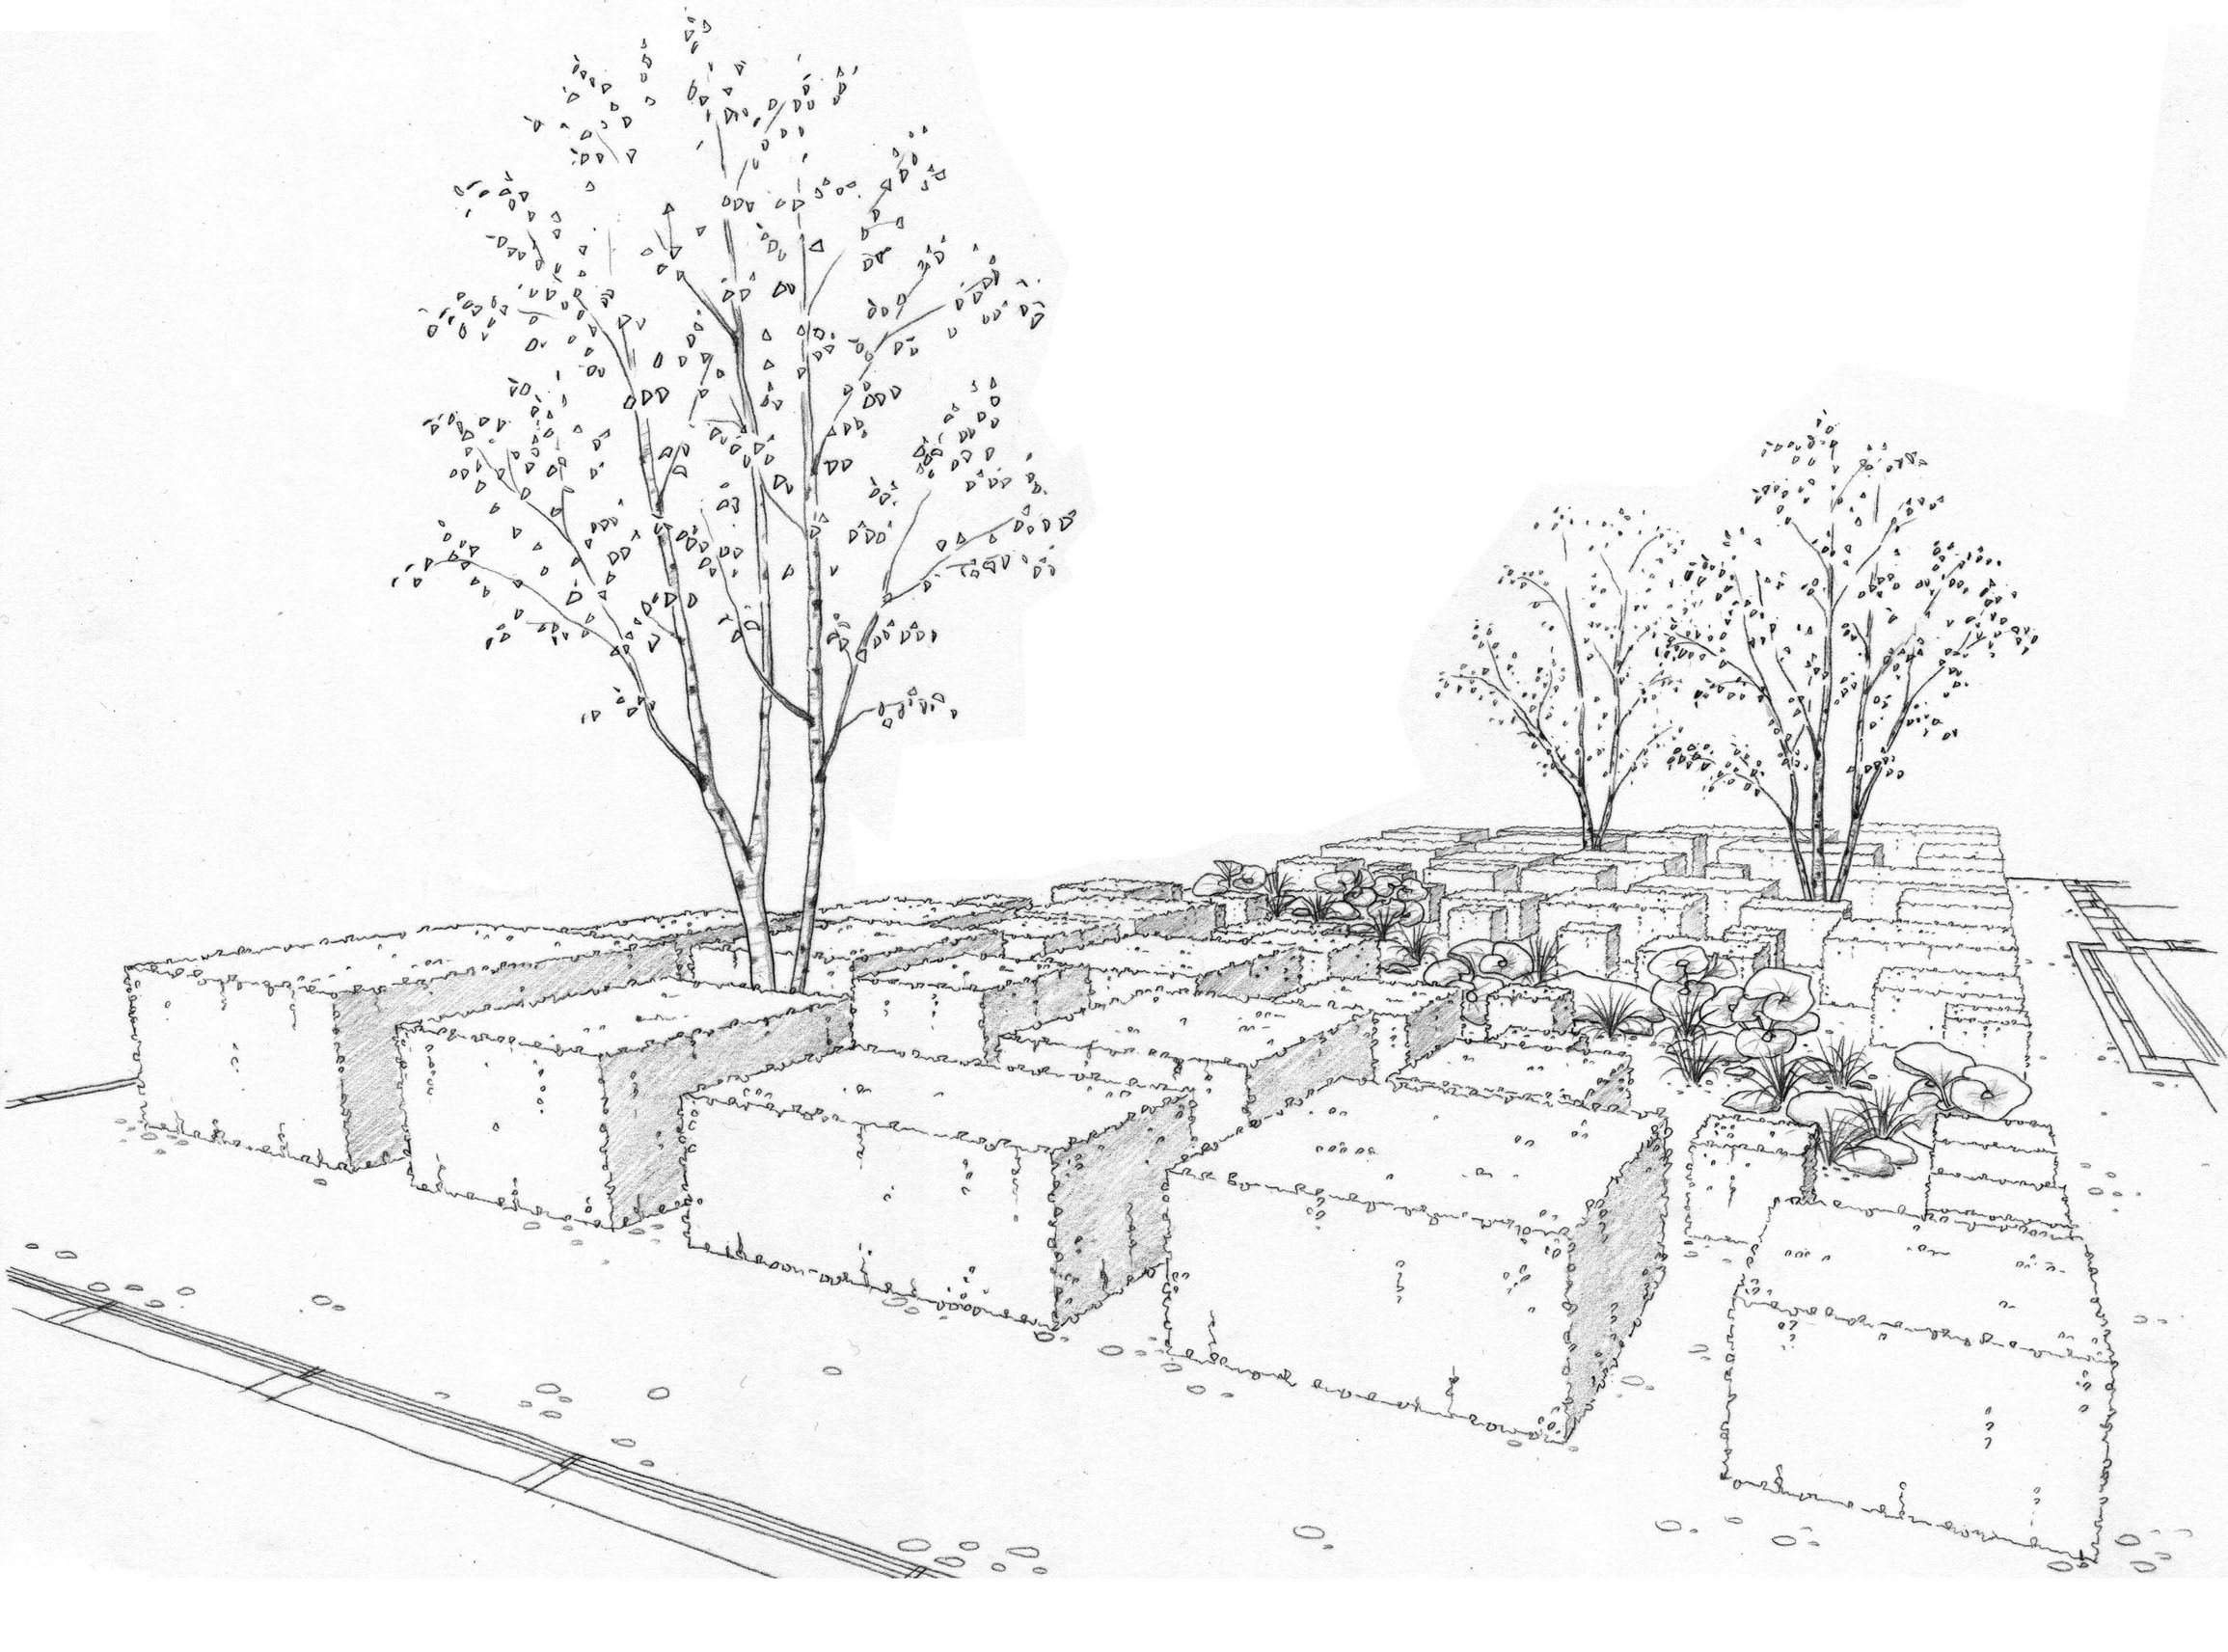 Landscape Architecture Perspective Drawings 61 best renate's drawings images on pinterest | landscape drawings